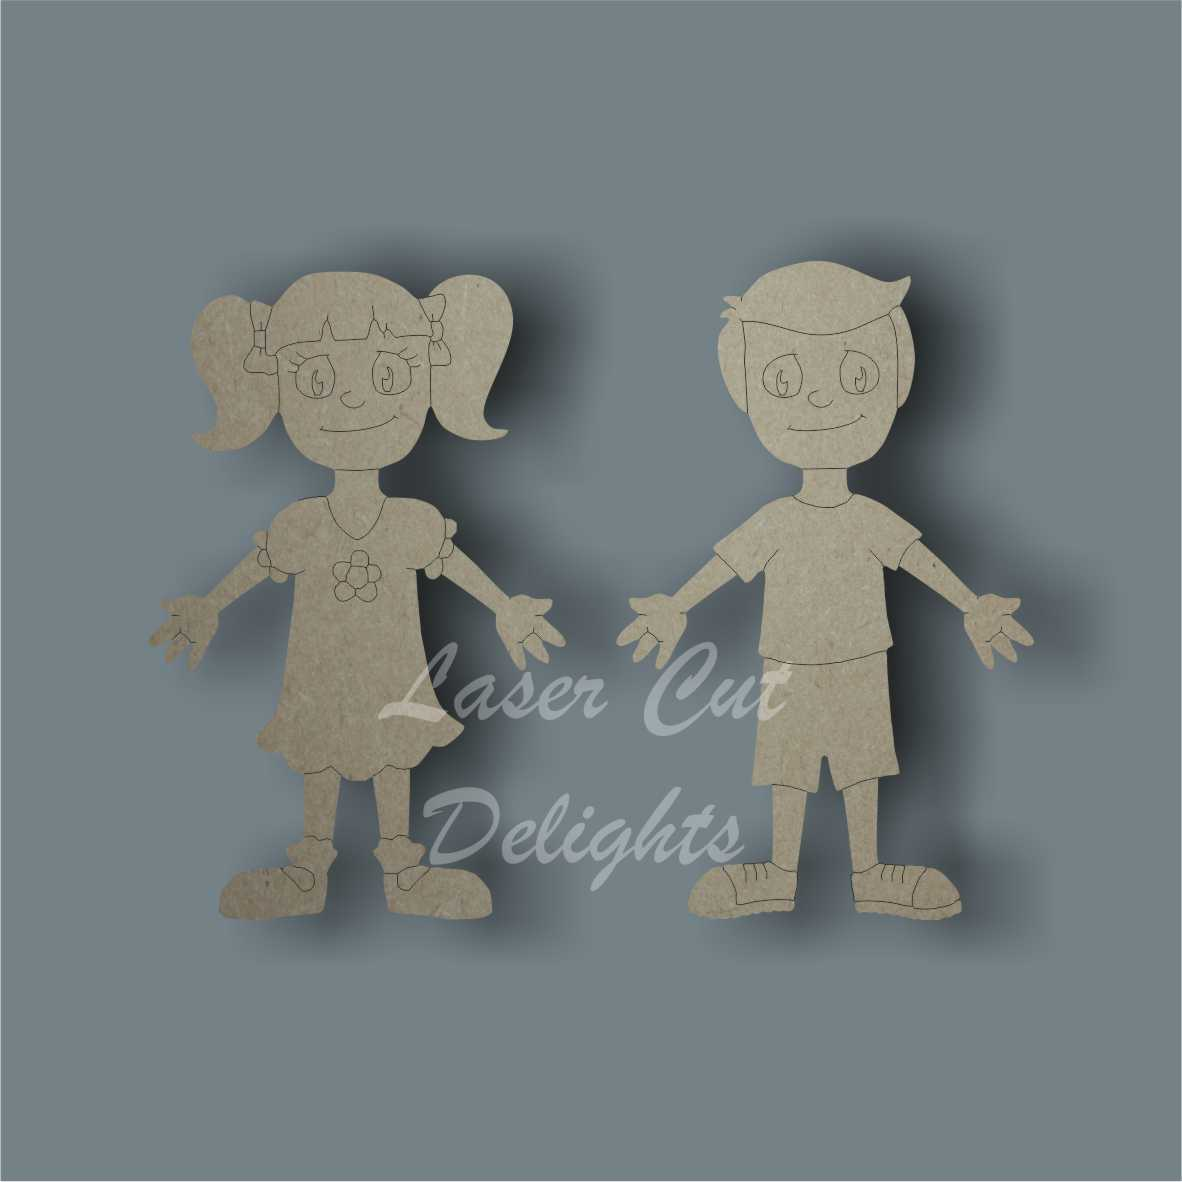 Family Character CHILDREN / Laser Cut Delights